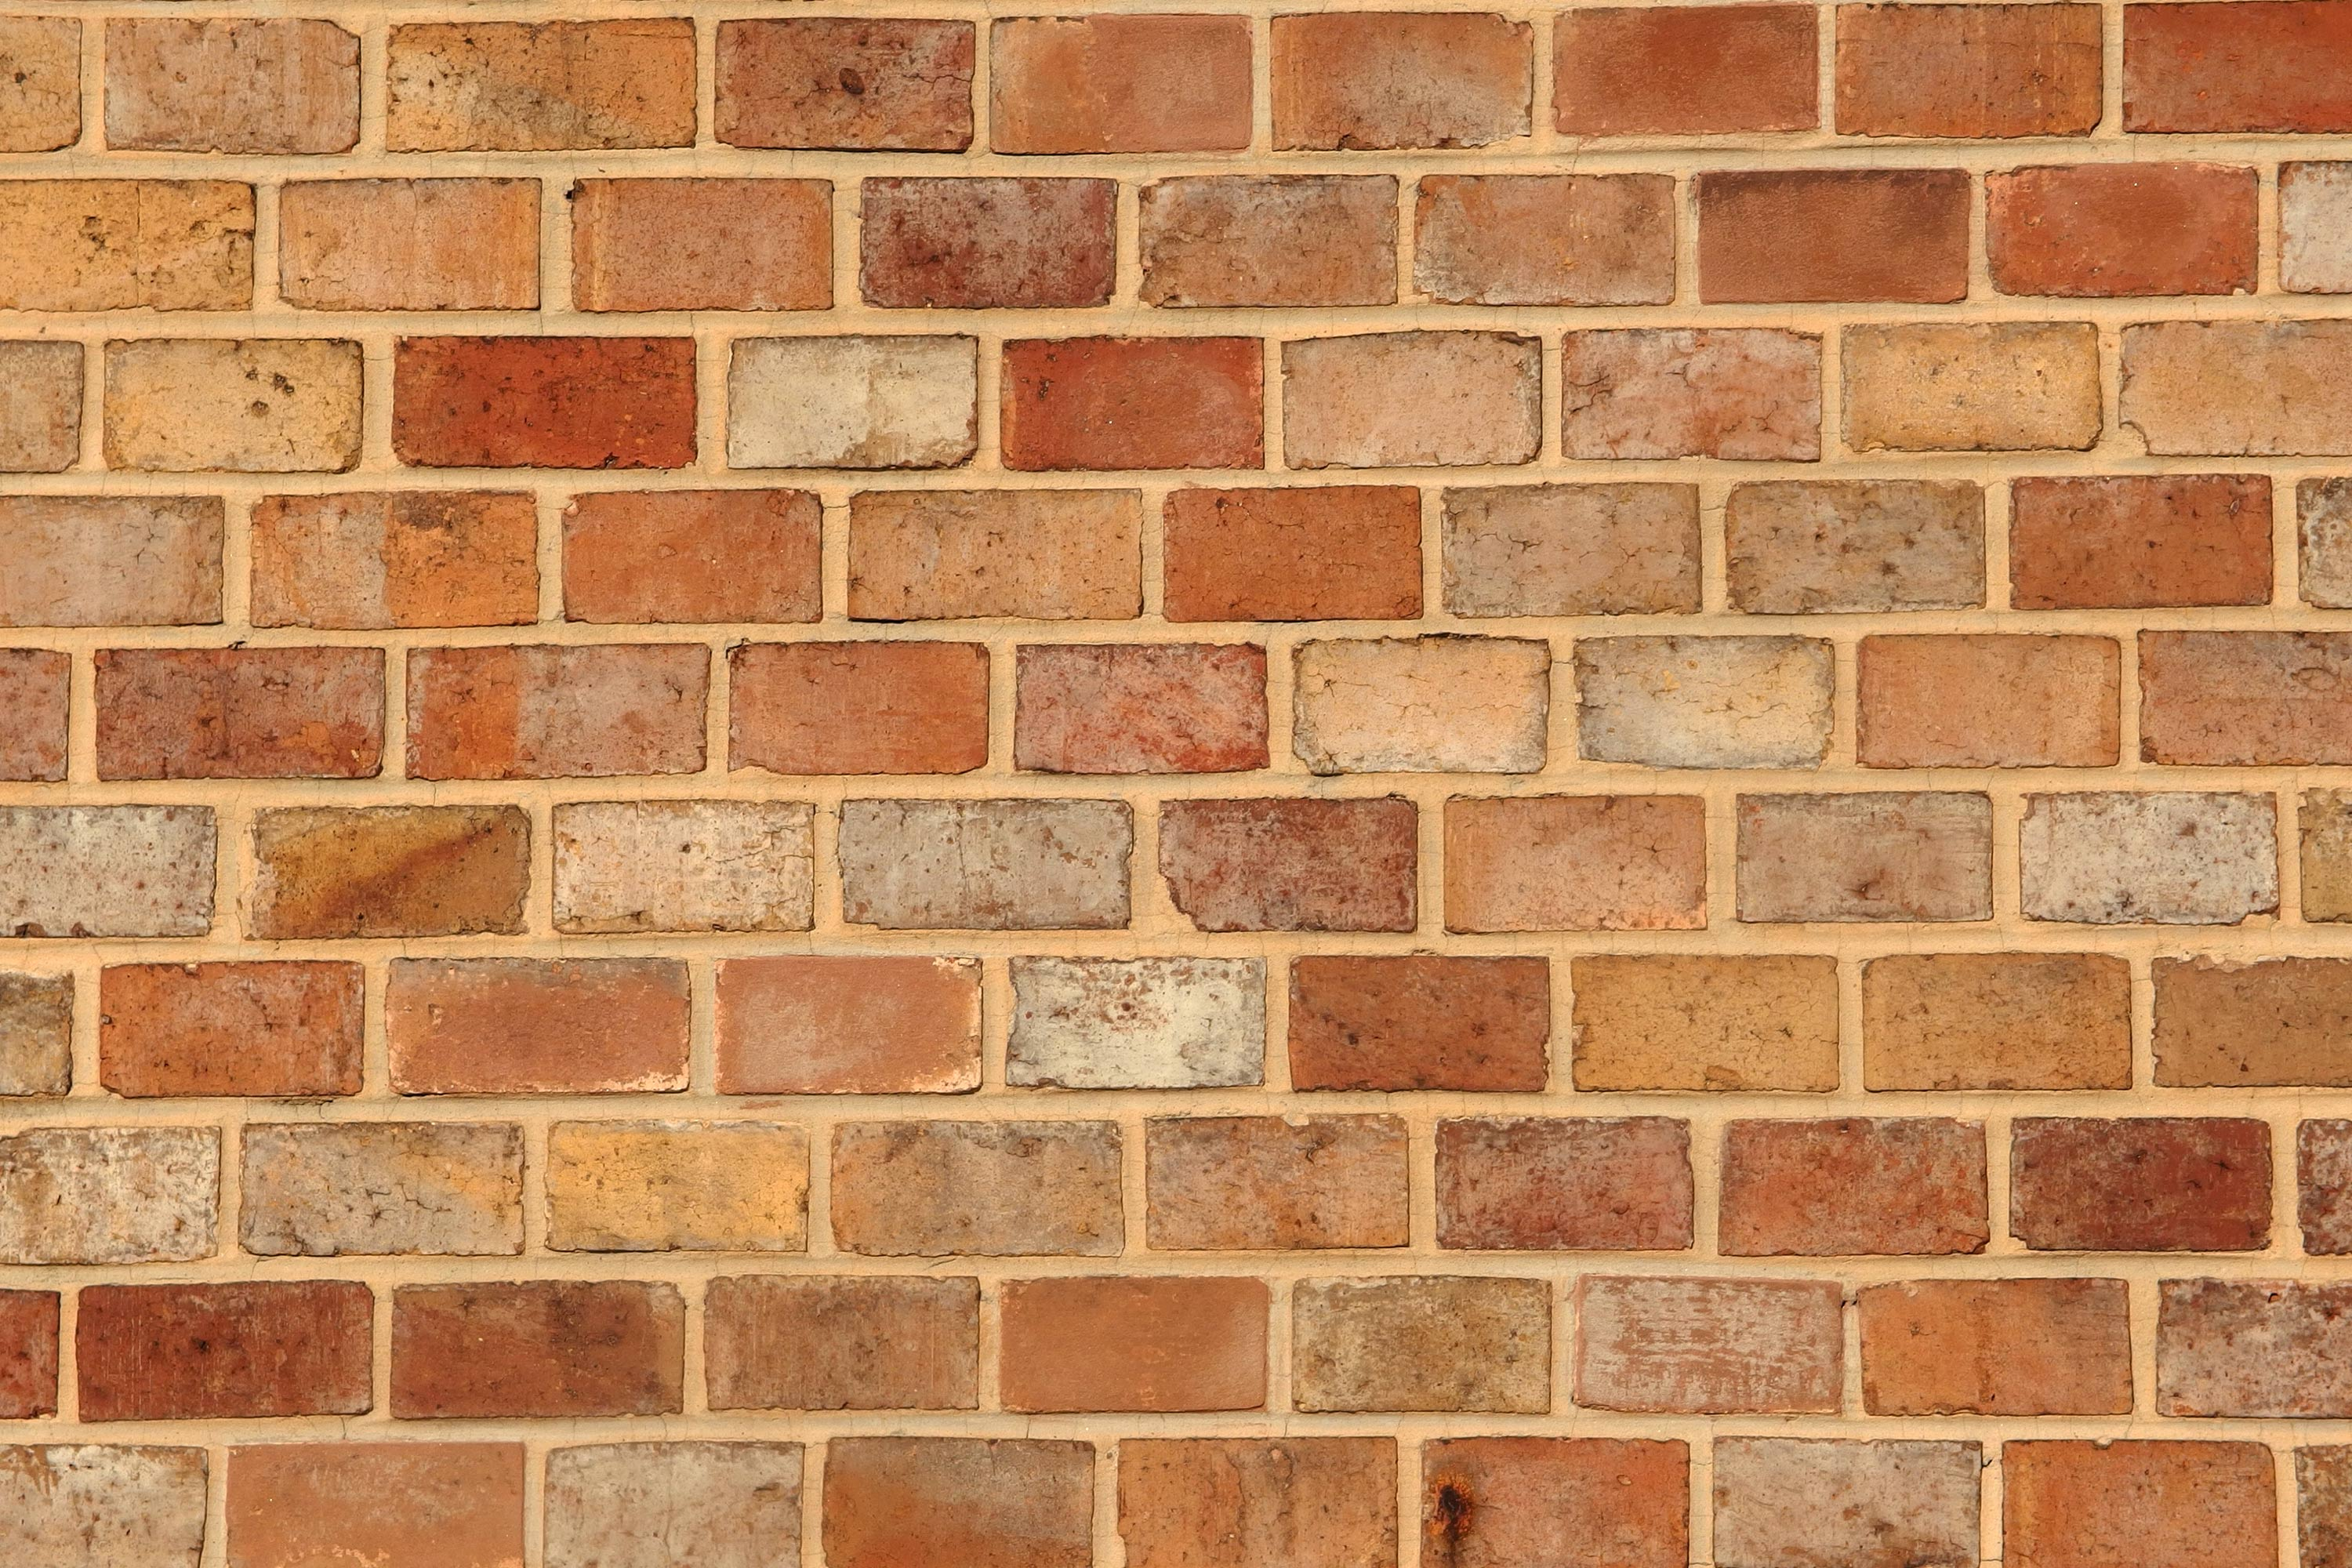 Brick Wall Texture Free Stock Photos Libreshot